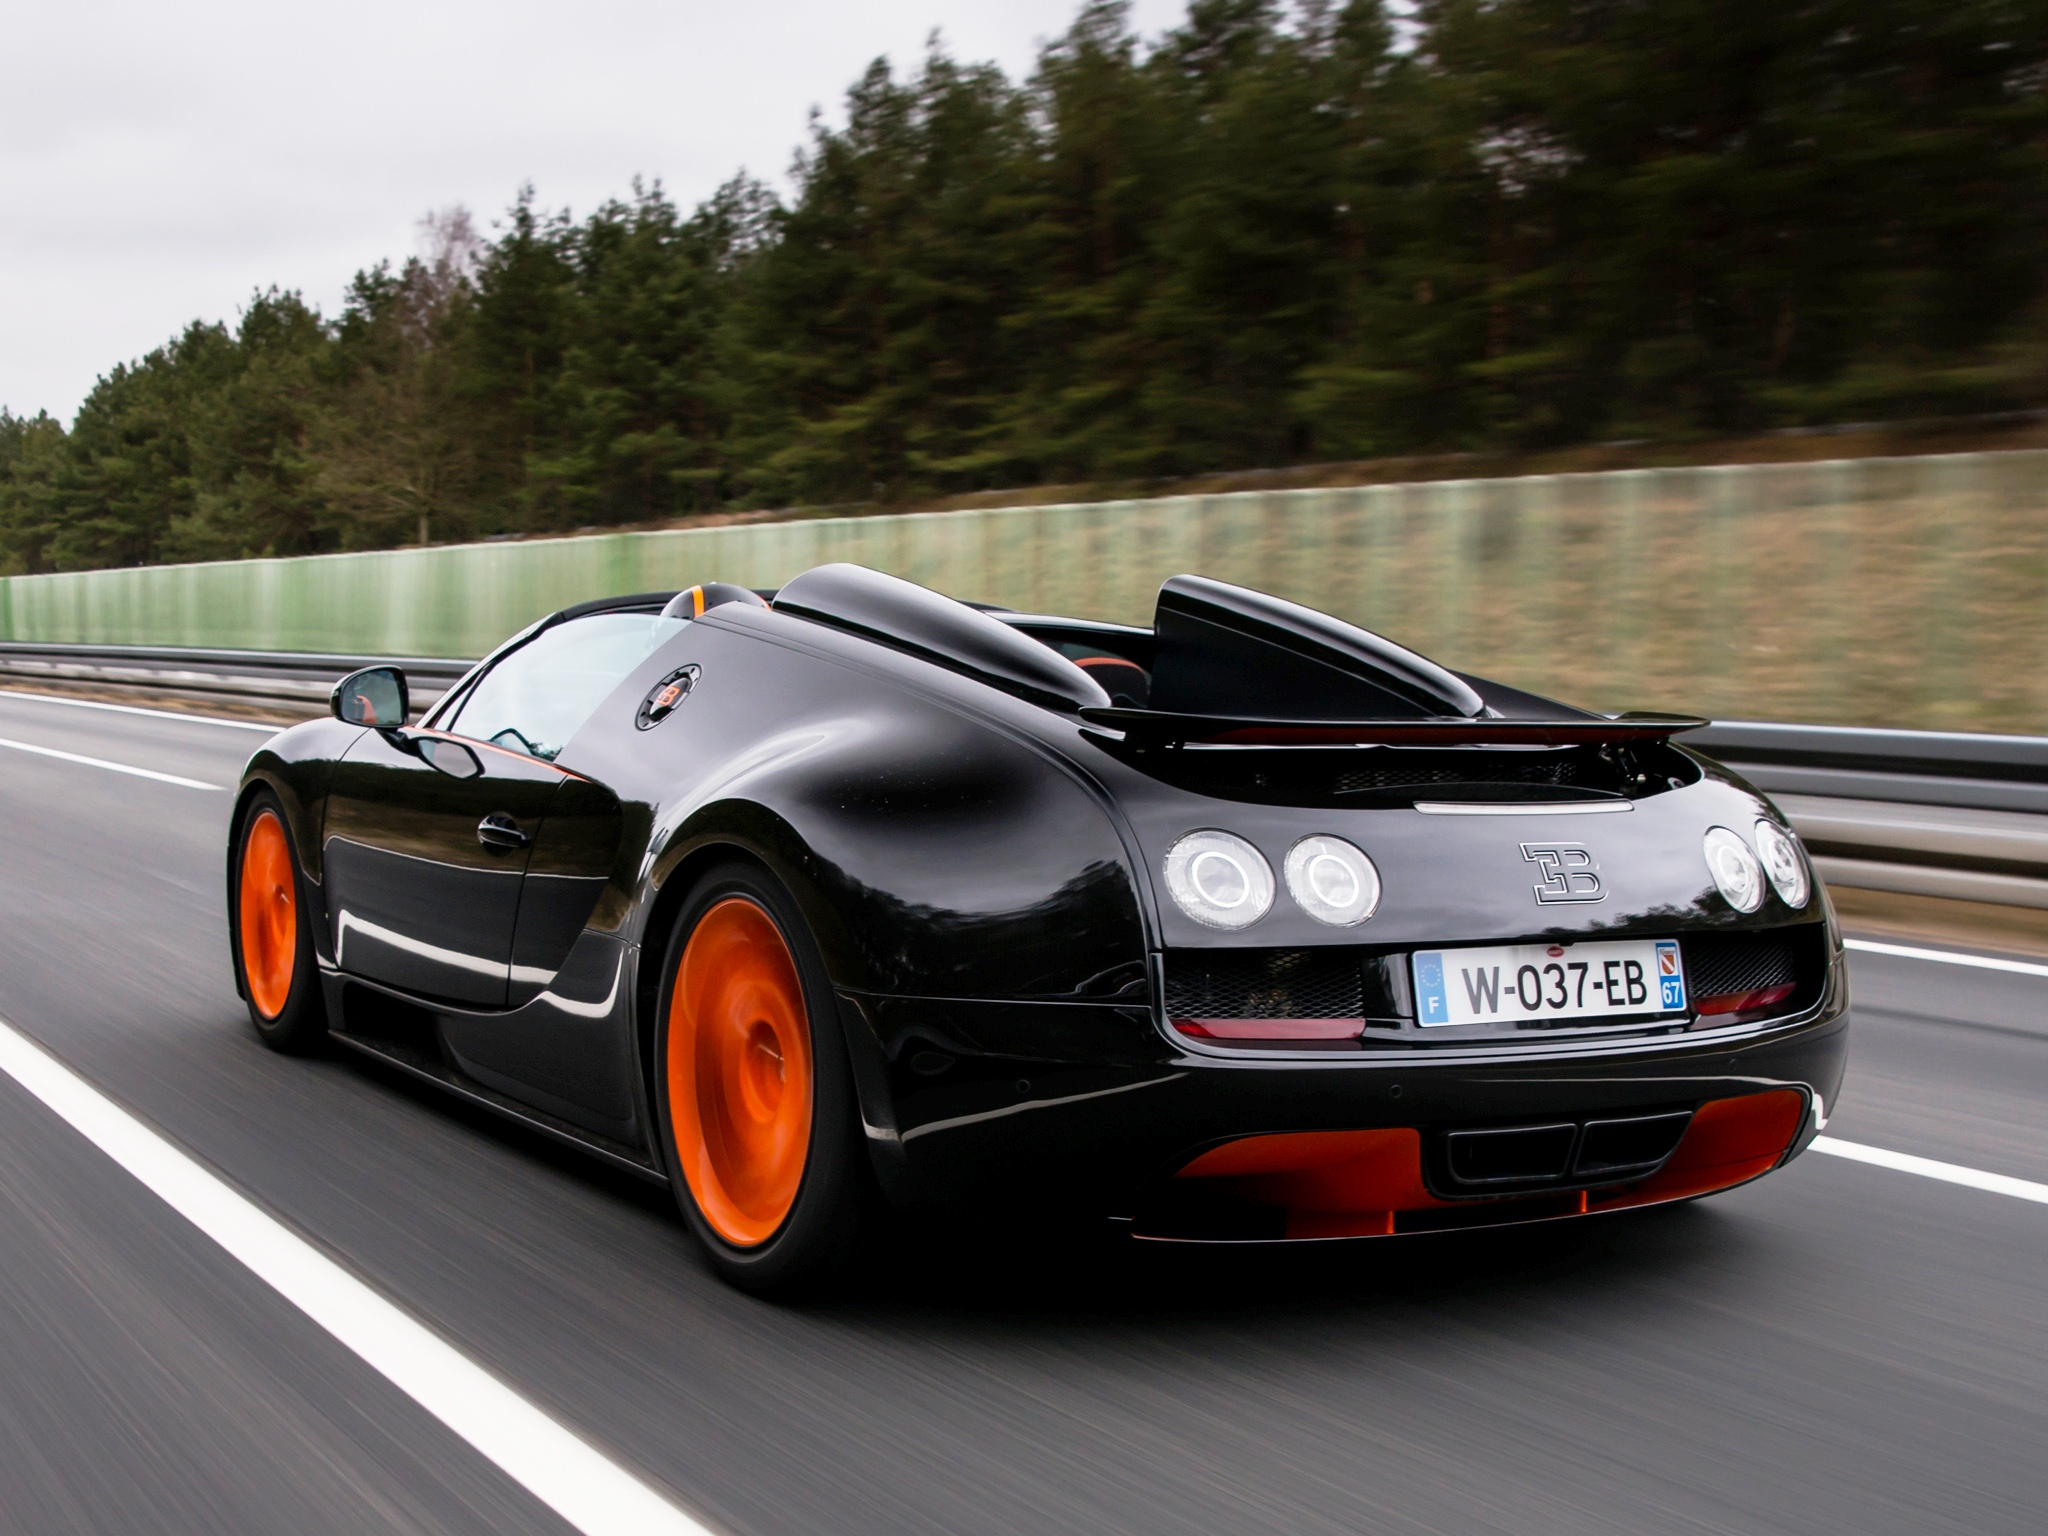 video bugatti veyron gs vitesse world record car exceeds 408 km h. Black Bedroom Furniture Sets. Home Design Ideas